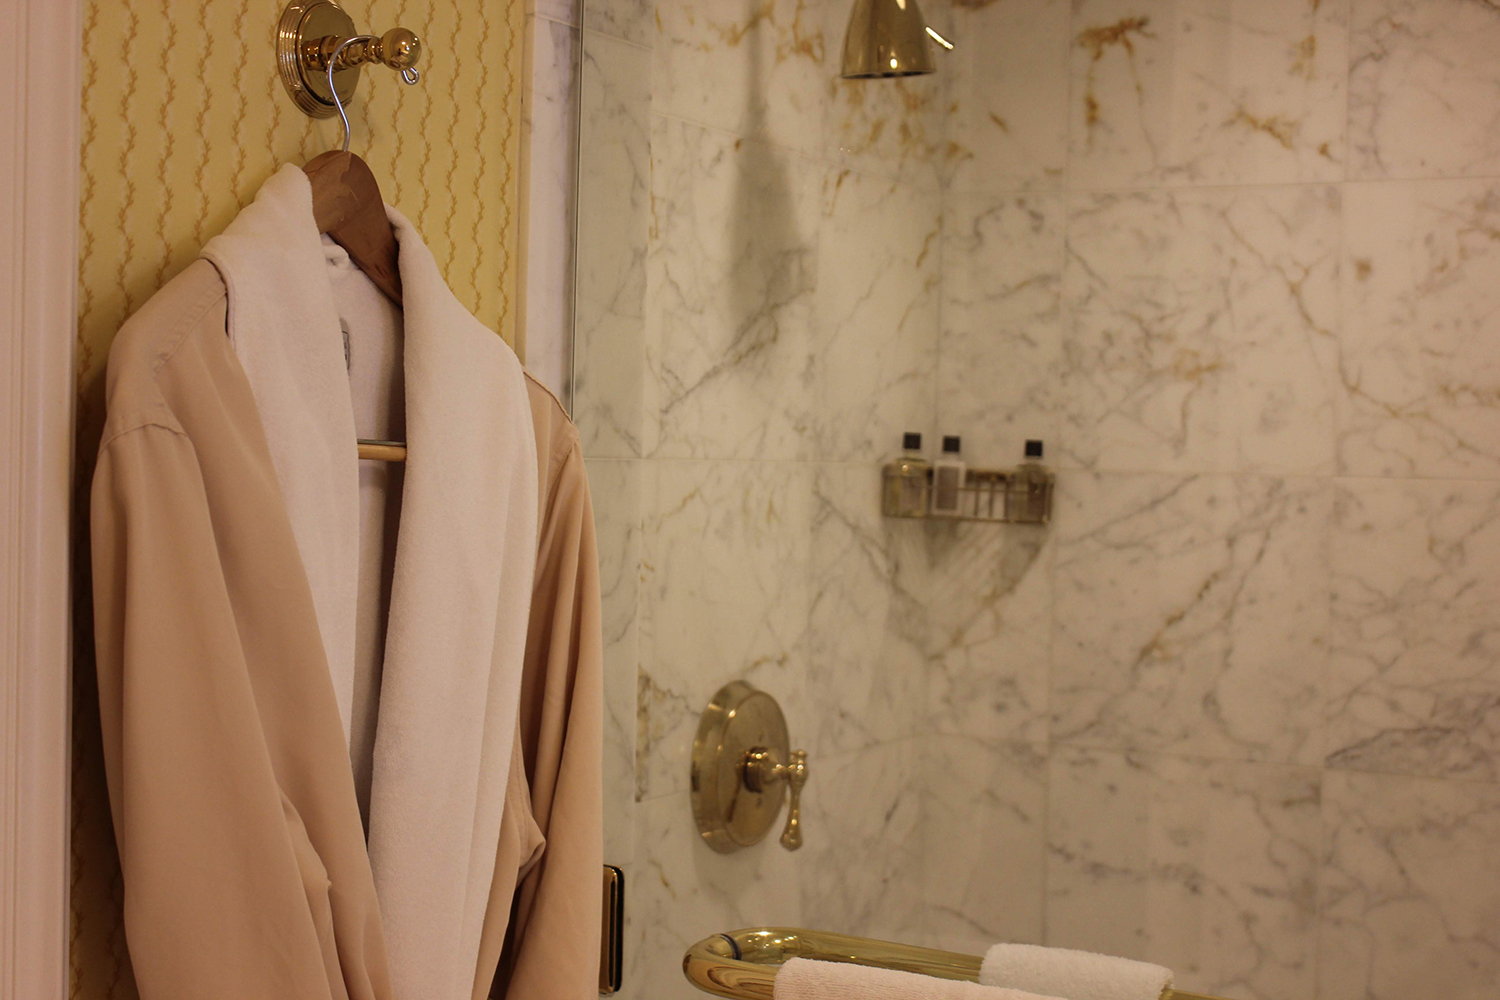 Luxury robes and marble showers are a welcome invitation to the weekend.